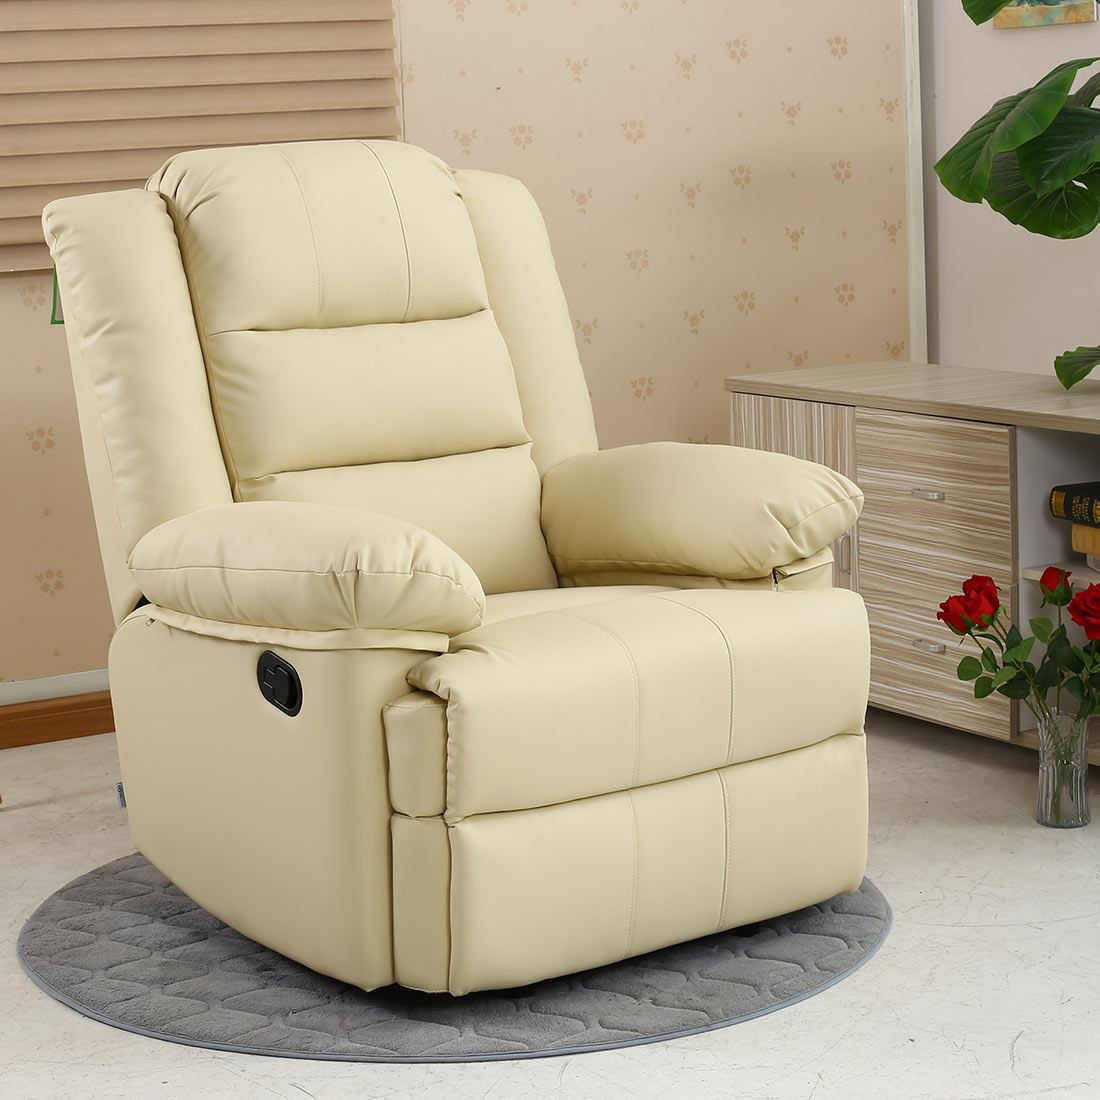 cream lounge chair cosco retro stool loxley leather recliner armchair sofa home